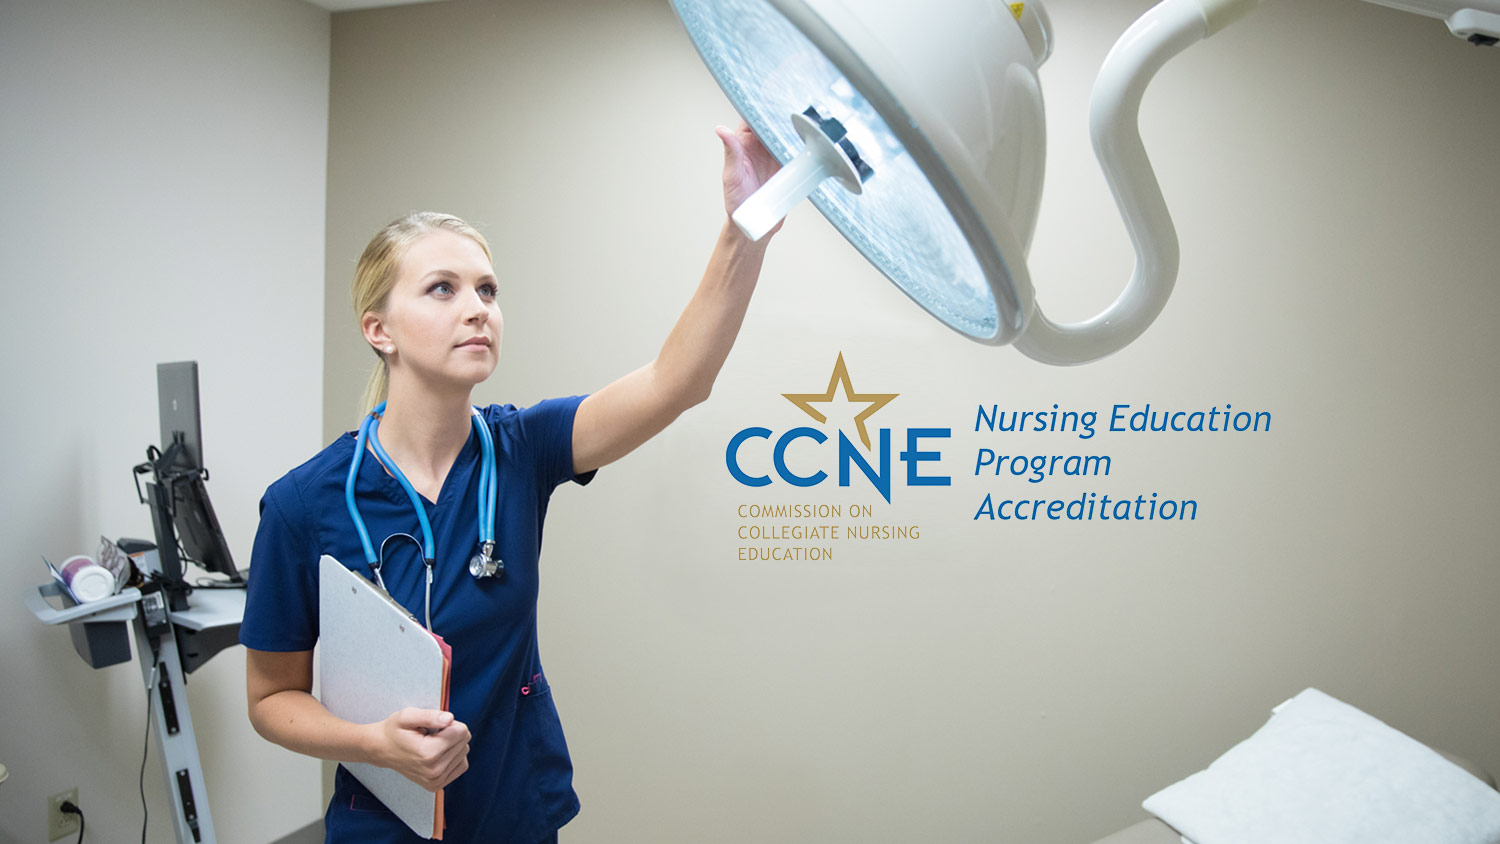 Regent University's School of Nursing RN to Bachelor of Science in Nursing Program Accredited by Commission on Collegiate Nursing Education (CCNE)